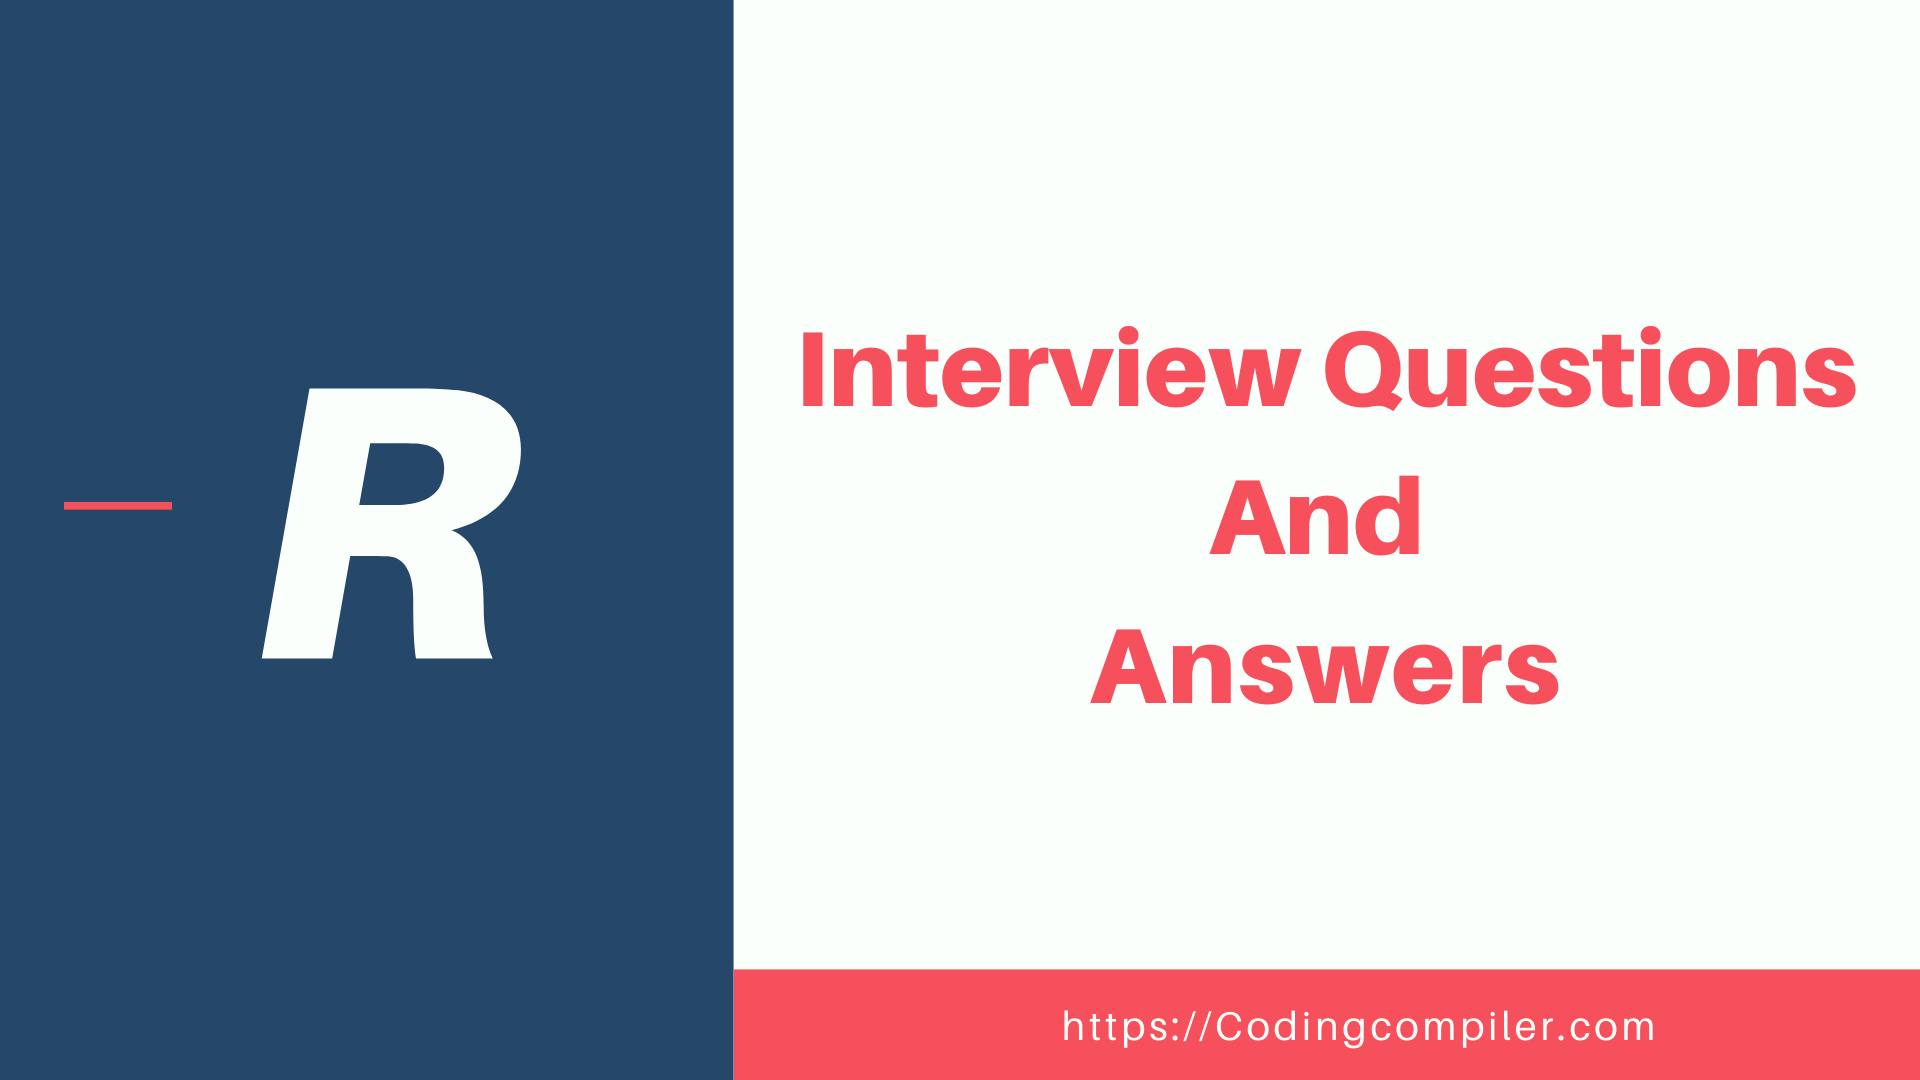 R Interview Questions